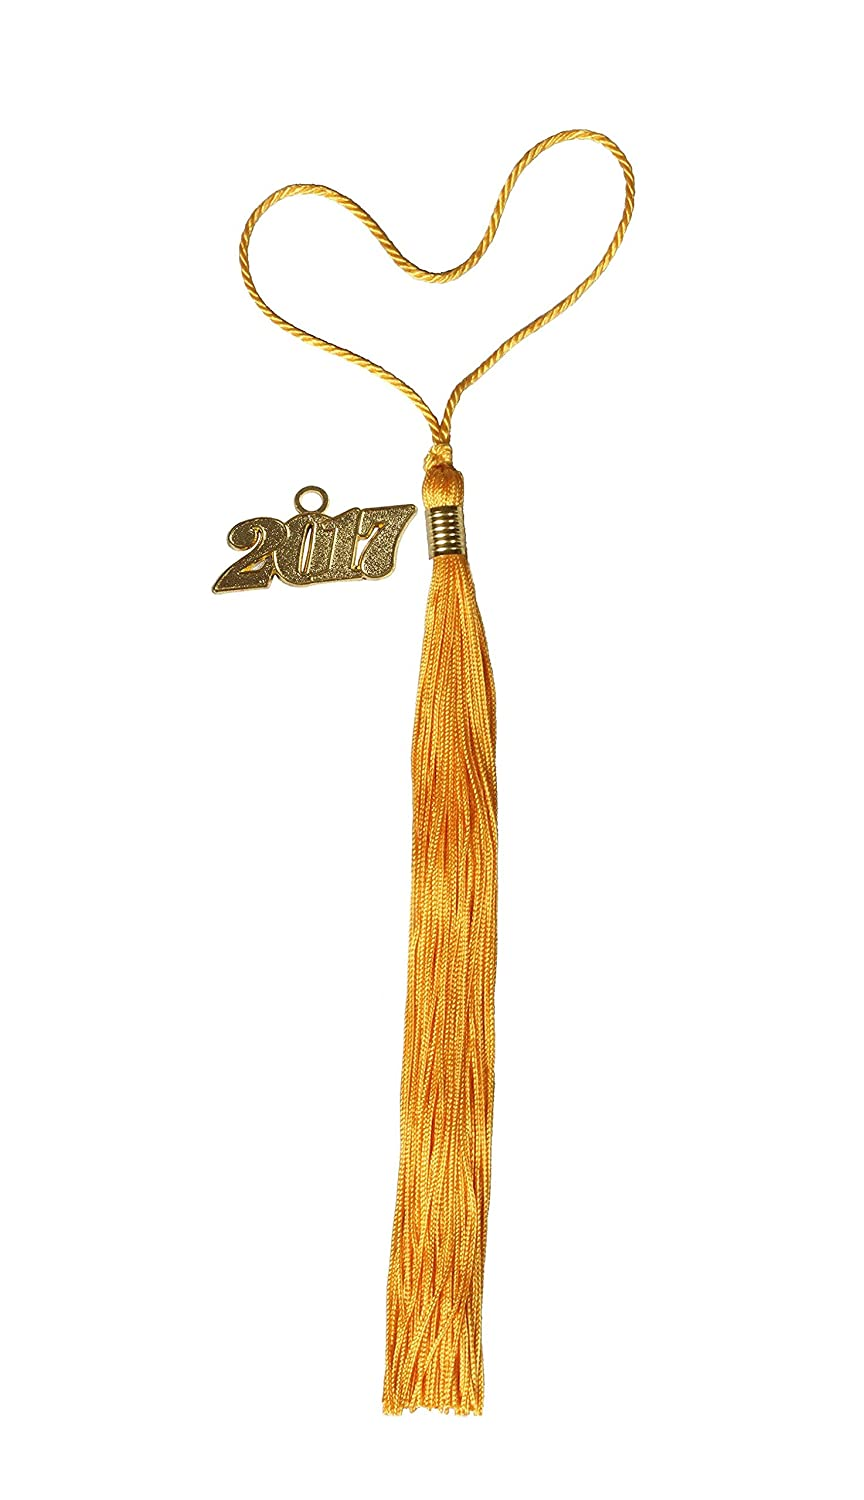 GradPlaza Graduation Tassel with 2017 Year Charm Gold 6926358887442